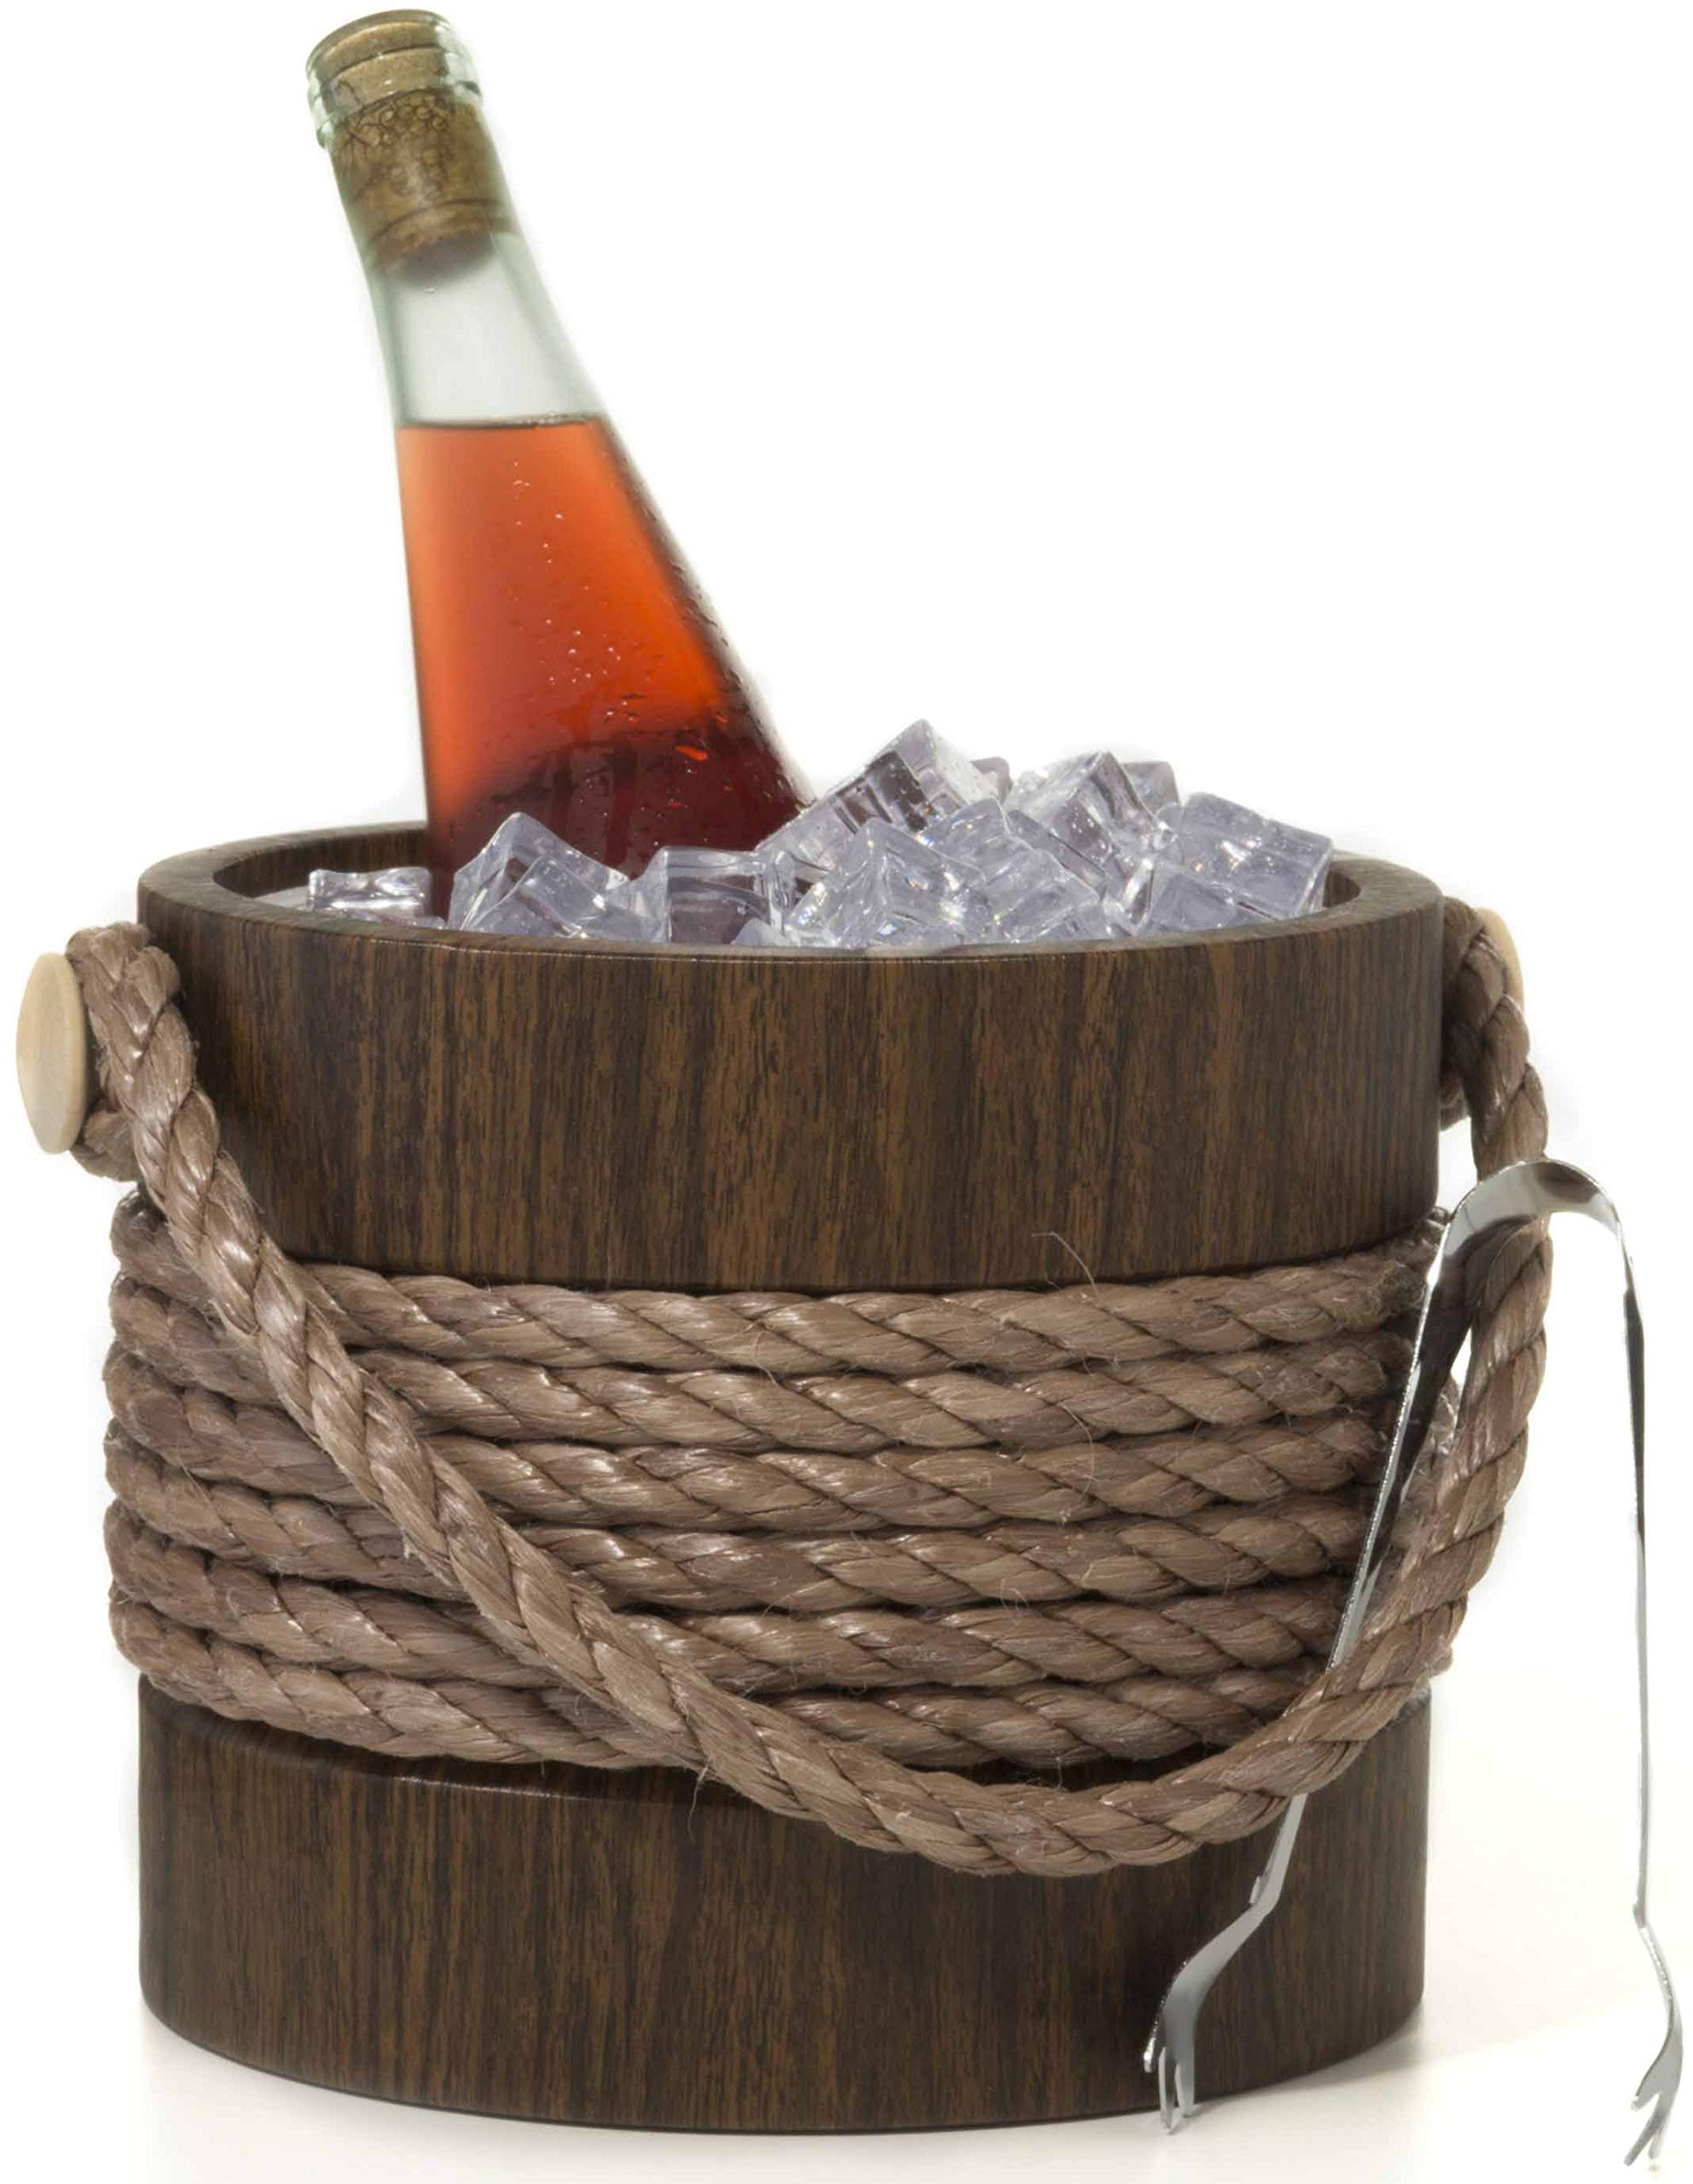 Hand Made In USA Walnut Grain With Rope Handle Double Walled 3-Quart Insulated Ice Bucket With Bonus Ice Tongs by Mr. Ice Bucket By Stephanie Imports (Image #4)